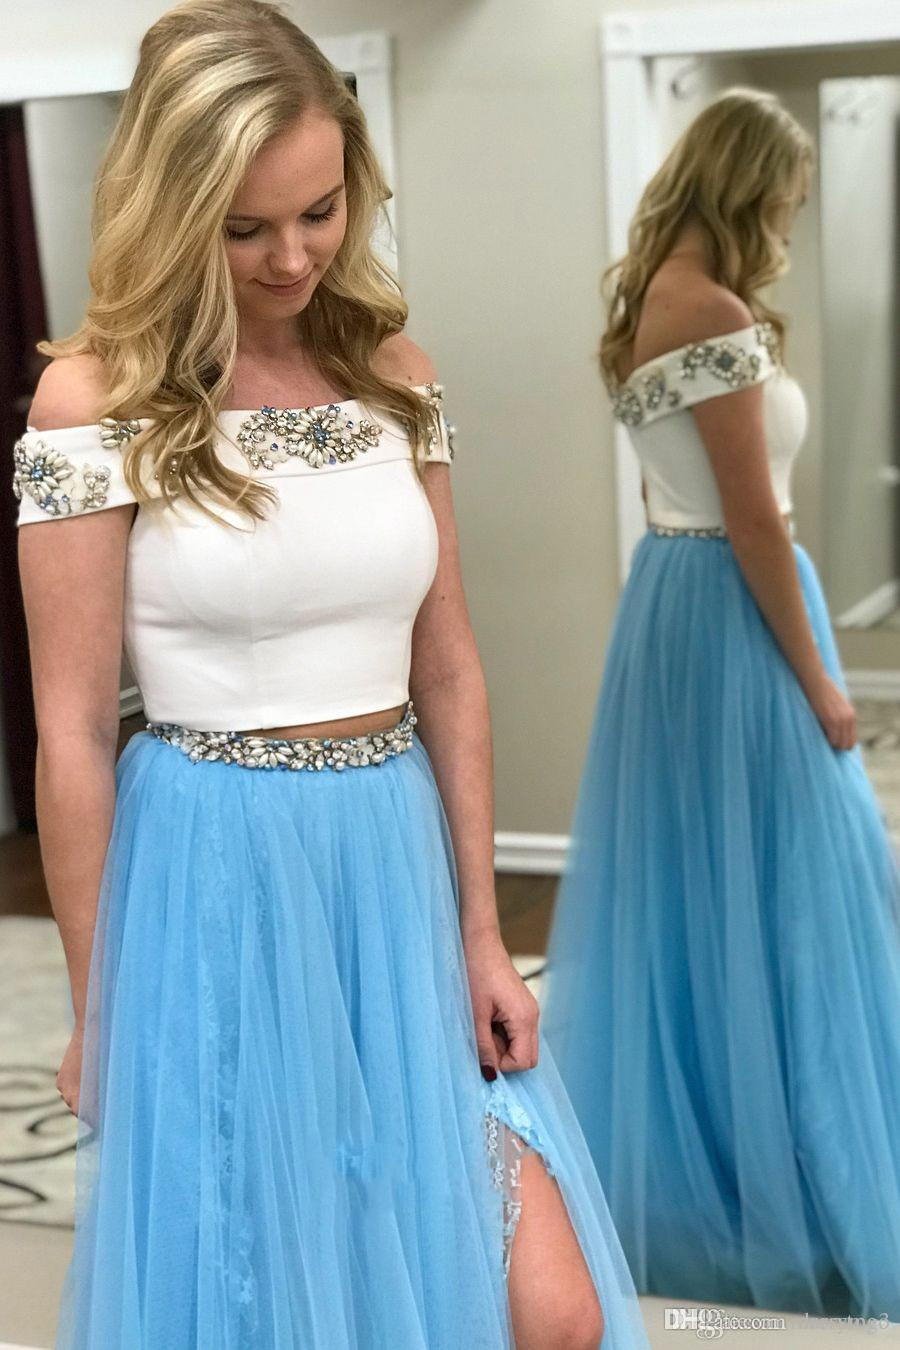 c580d36ec56 Two Pieces Prom Dresses 2019 A Line Off The Shoulder White Top Blue Skirt  Crystals Formal Special Occasion Dresses DP0340 Prom Stores Sequin Prom  Dresses ...